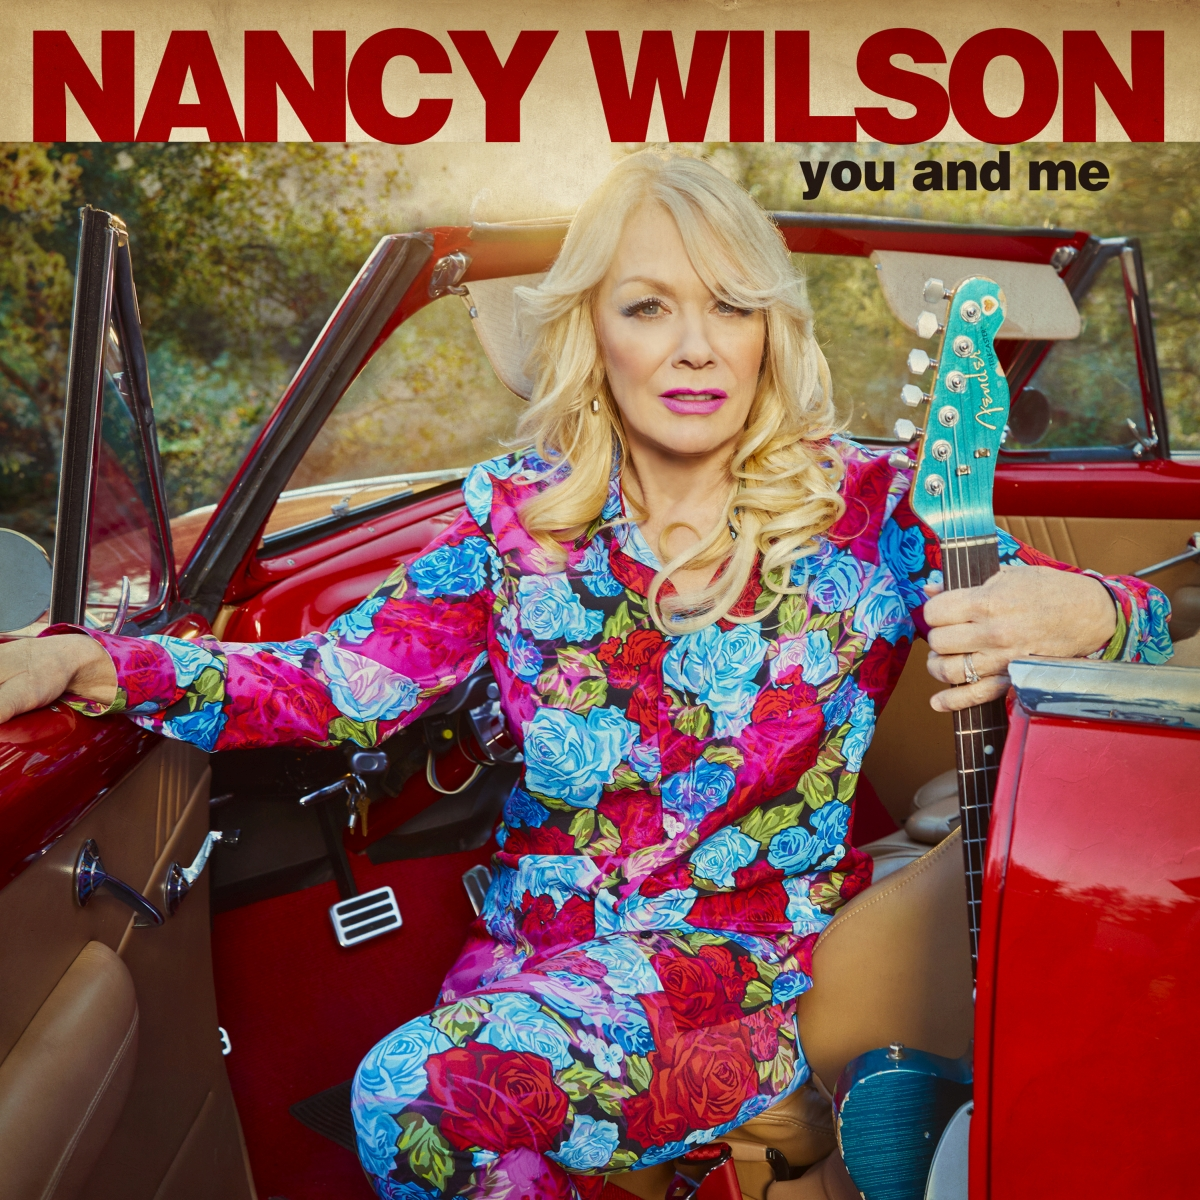 nancy wilson heart debut solo album you and me cover art